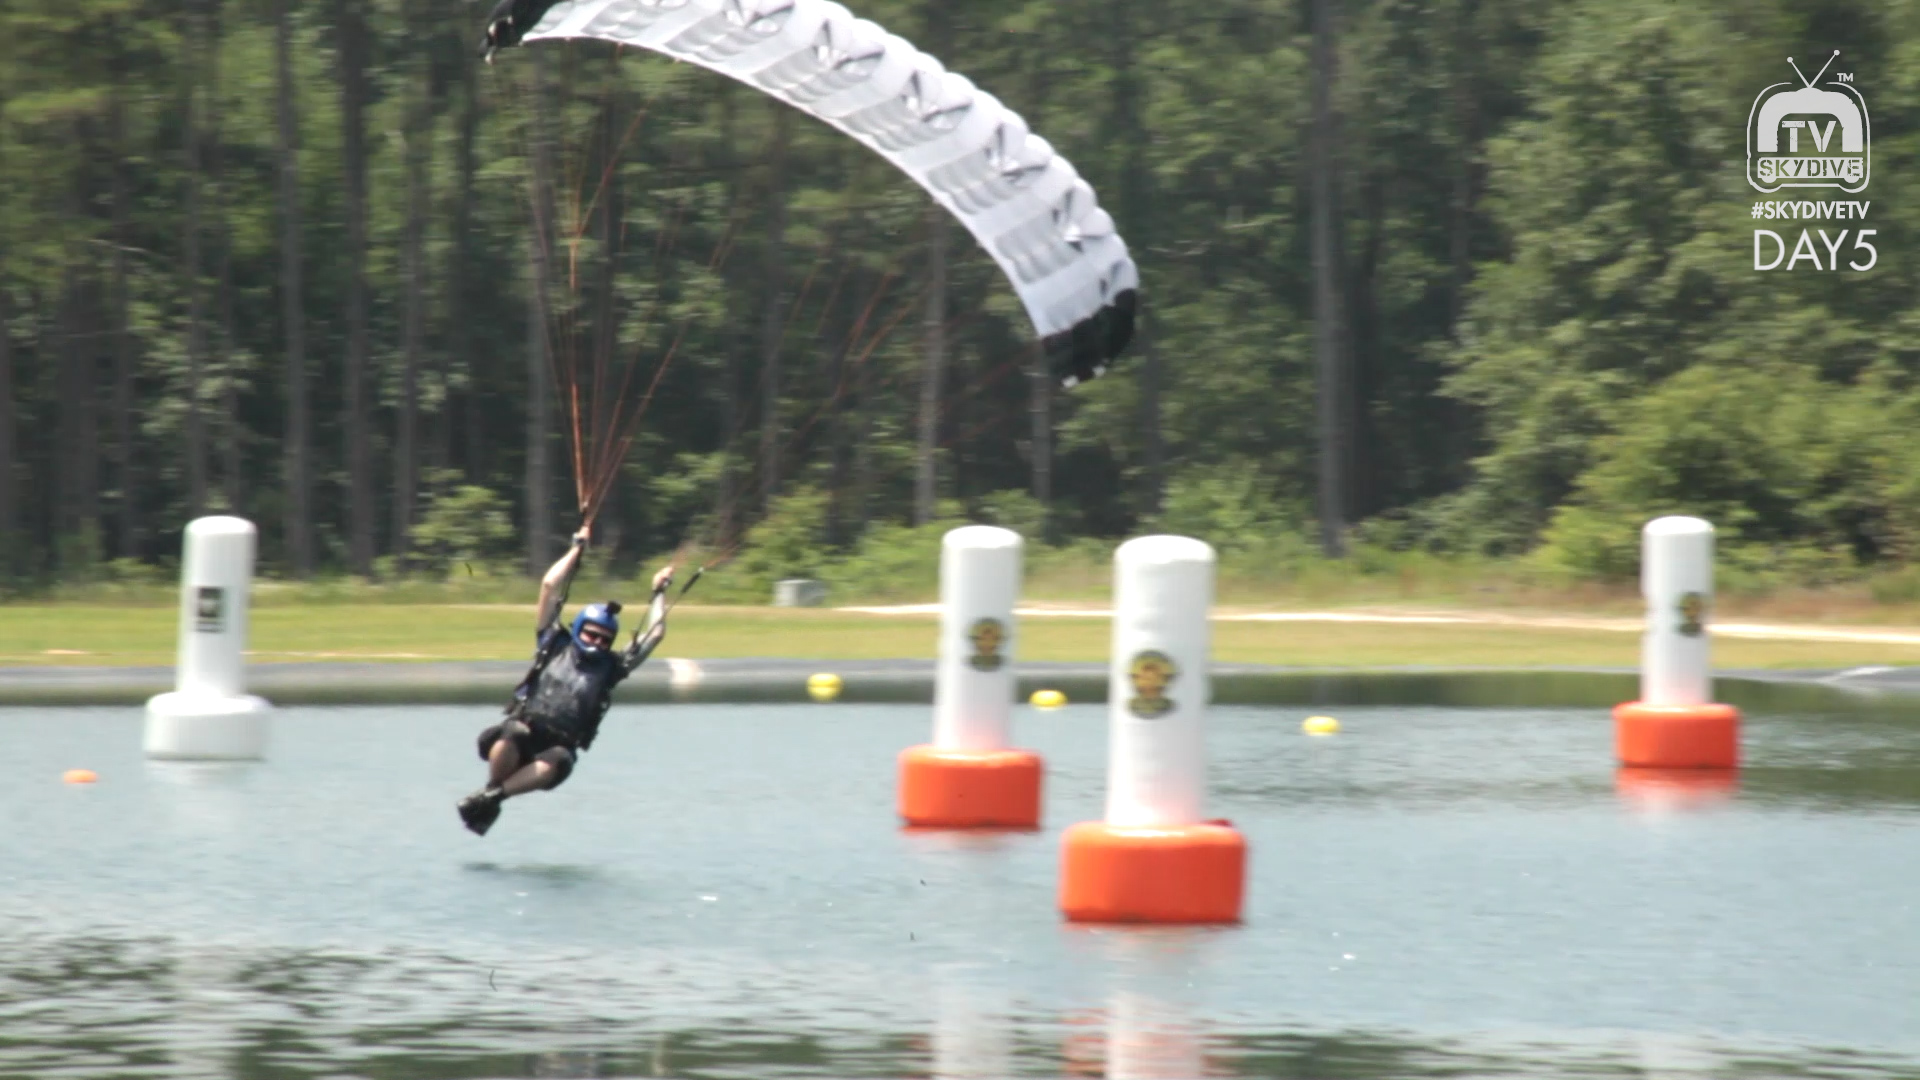 DAY5-CANOPY PILOTING - SPEED